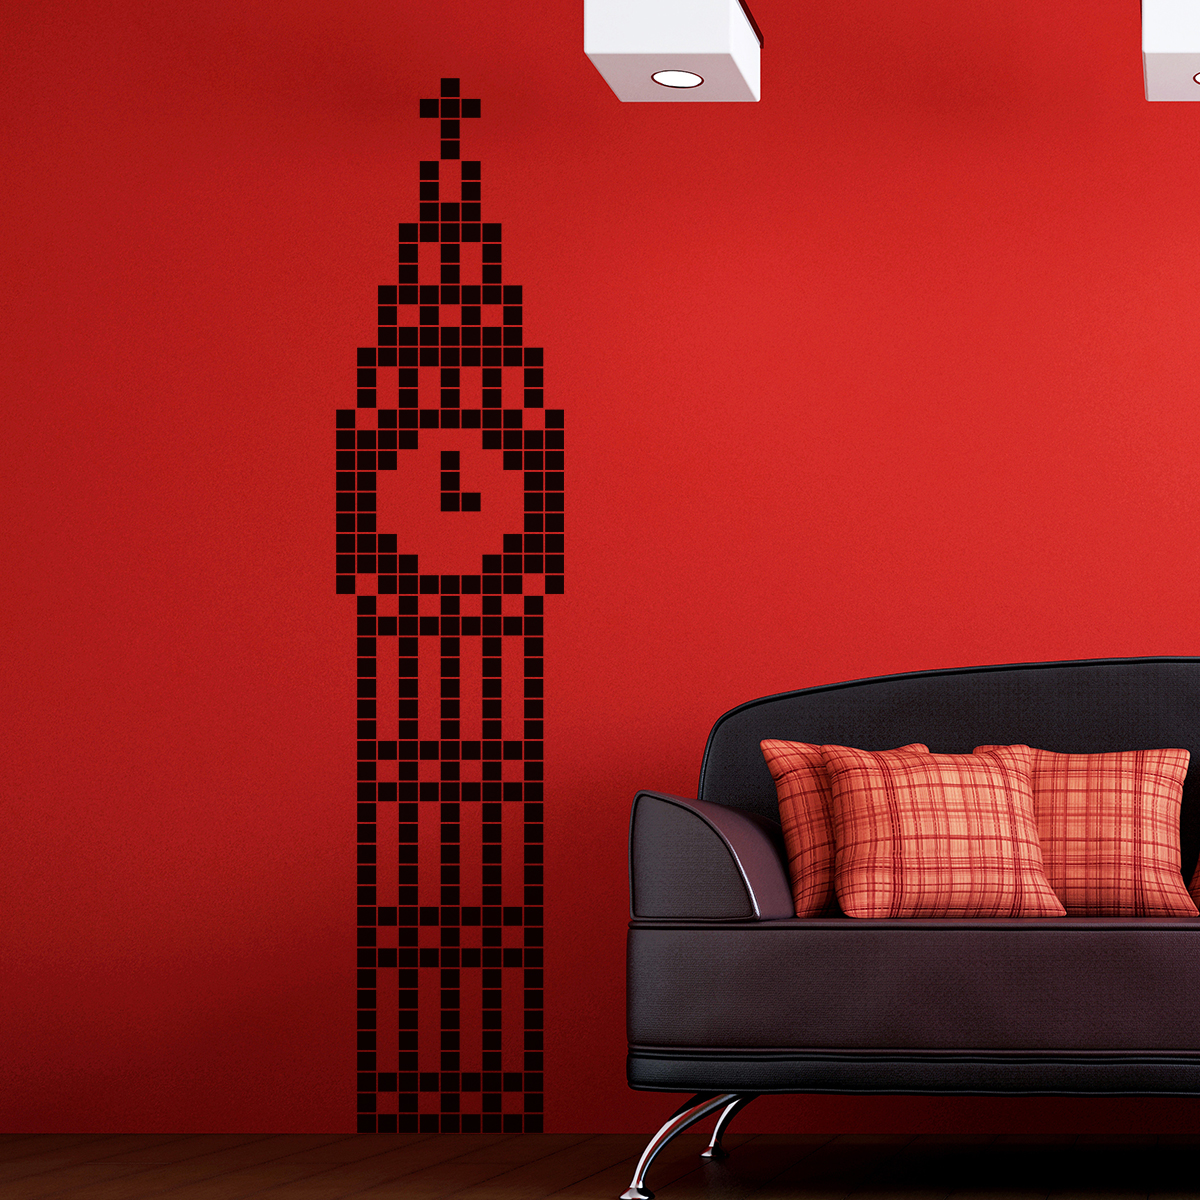 Tete De Lit 160 Design Sticker Big Ben En 2d – Stickers Stickers Villes Et